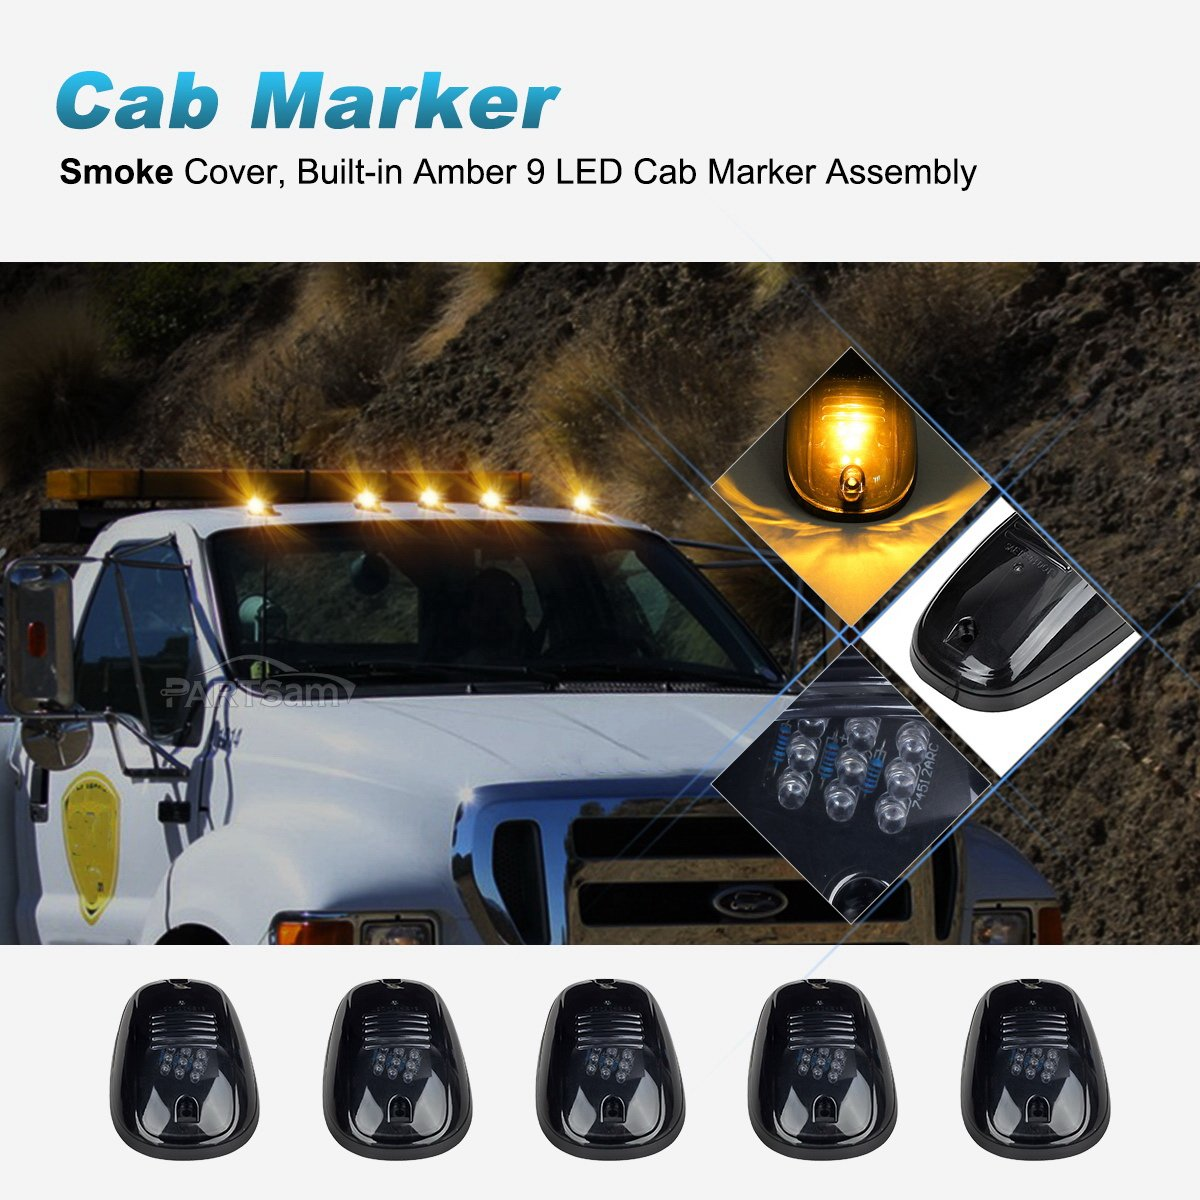 Partsam Cab Marker Lights 5pcs Amber Top Clearance Roof Lucas Wiring Harness Smoke Running With Pack For 2003 2018 Dodge Ram 1500 2500 3500 4500 5500 Pickup